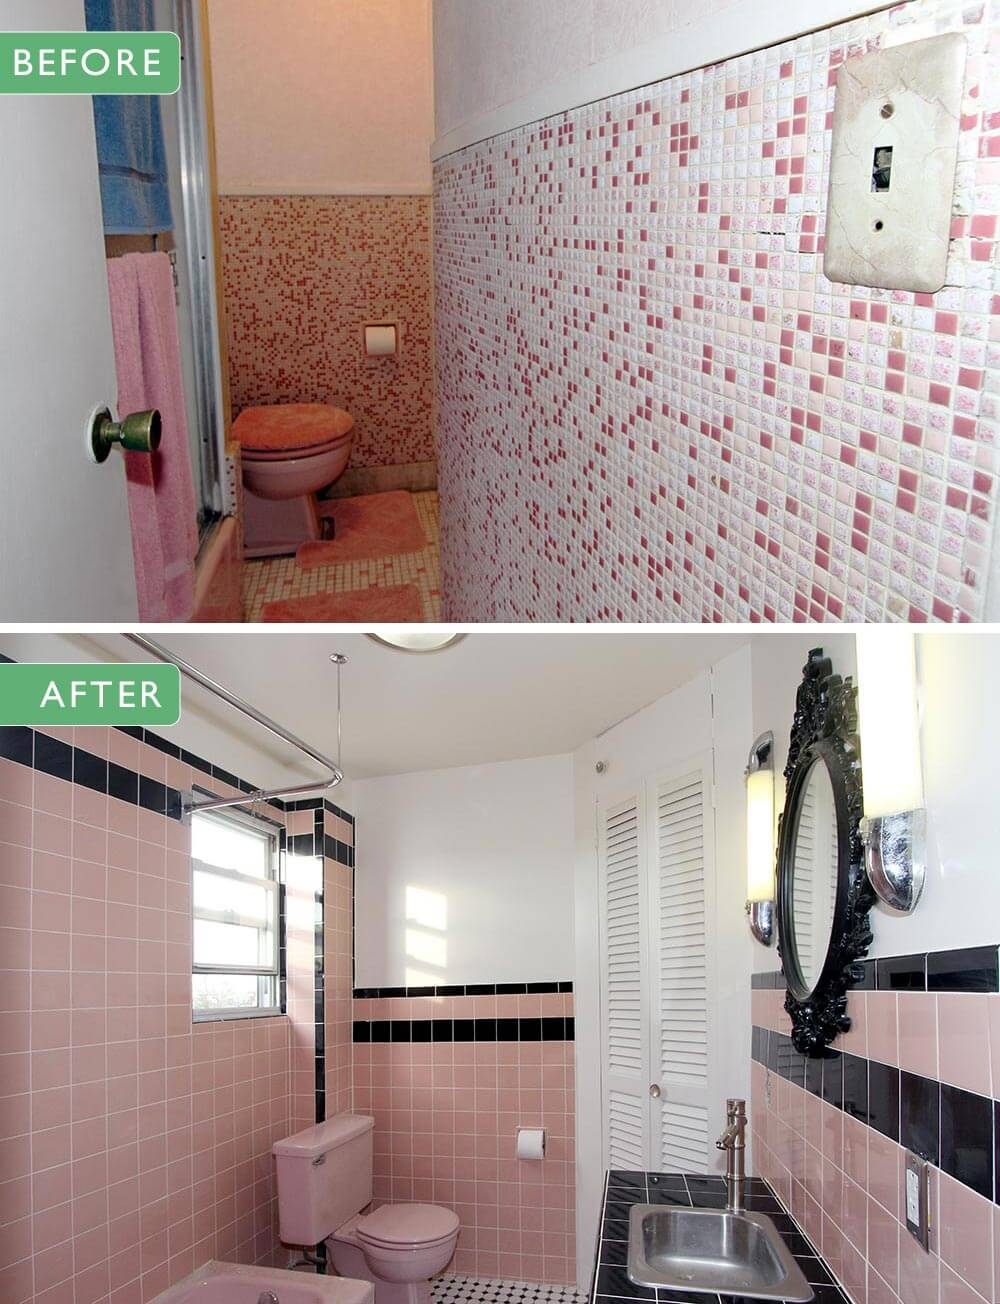 Where to find vintage bathroom tile remember to check your local save the pink bathrooms dailygadgetfo Gallery